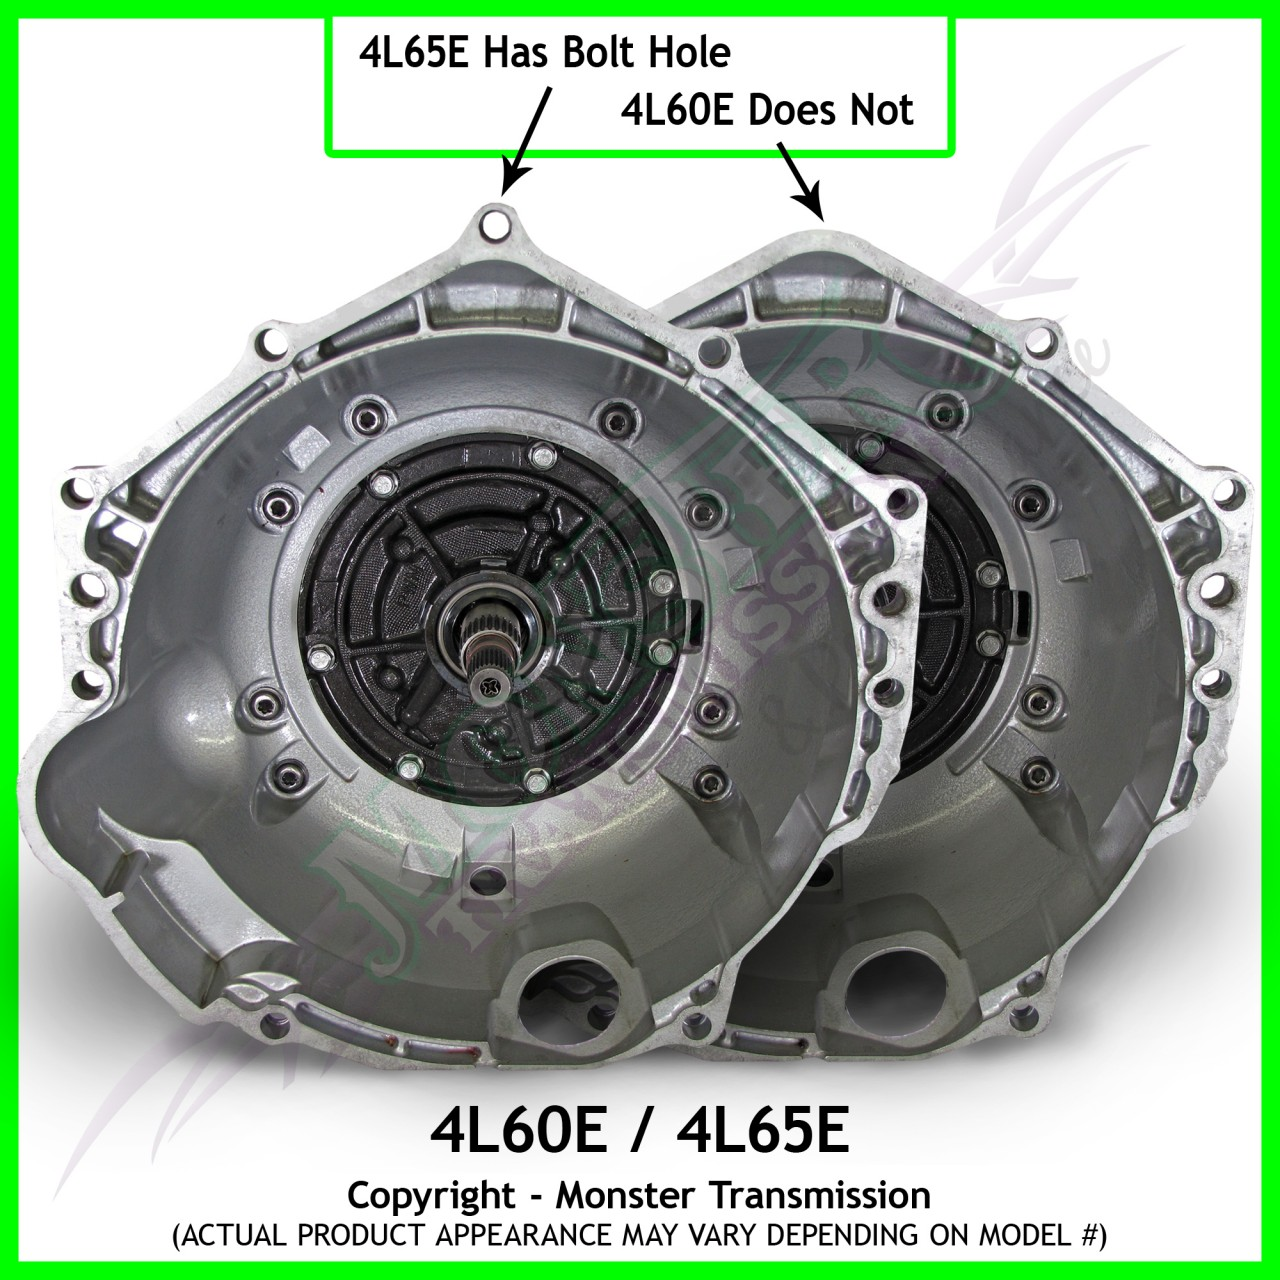 4l60e 4l65e transmission remanufactured 4x4 heavy duty 4 8 5 3 ls1 S10 4.3 Transmission 4l60e 4l65e transmission remanufactured 4x4 heavy duty 4 8 5 3 ls1 6 0l 4wd